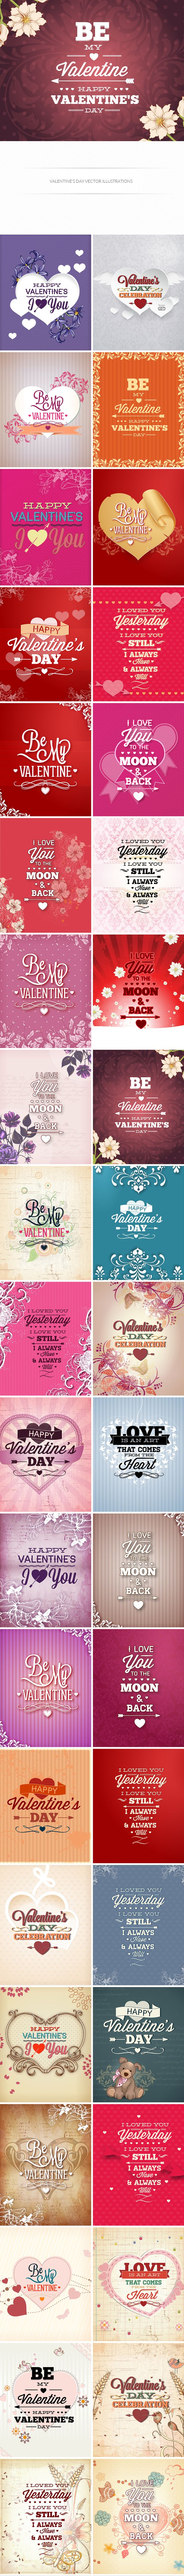 Find all these awesome vector illustrations and much more here: https://www.inkydeals.com/deal/megalicious-bundle/#illustrations